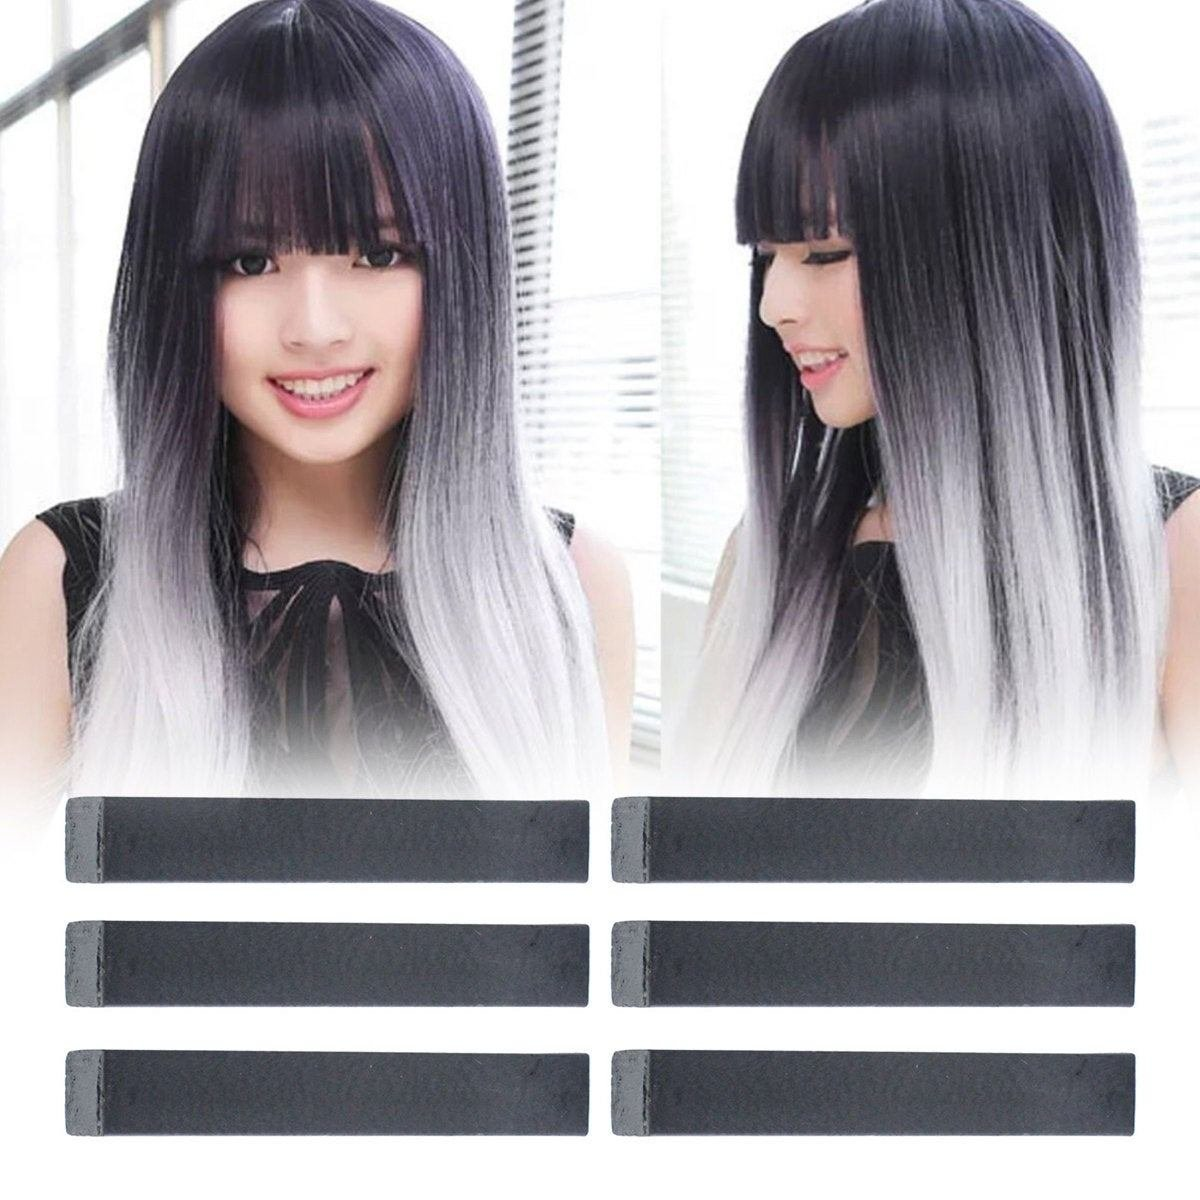 The Best 6 Best Temporary Jet Black Hair Dye For Dark And By Pictures